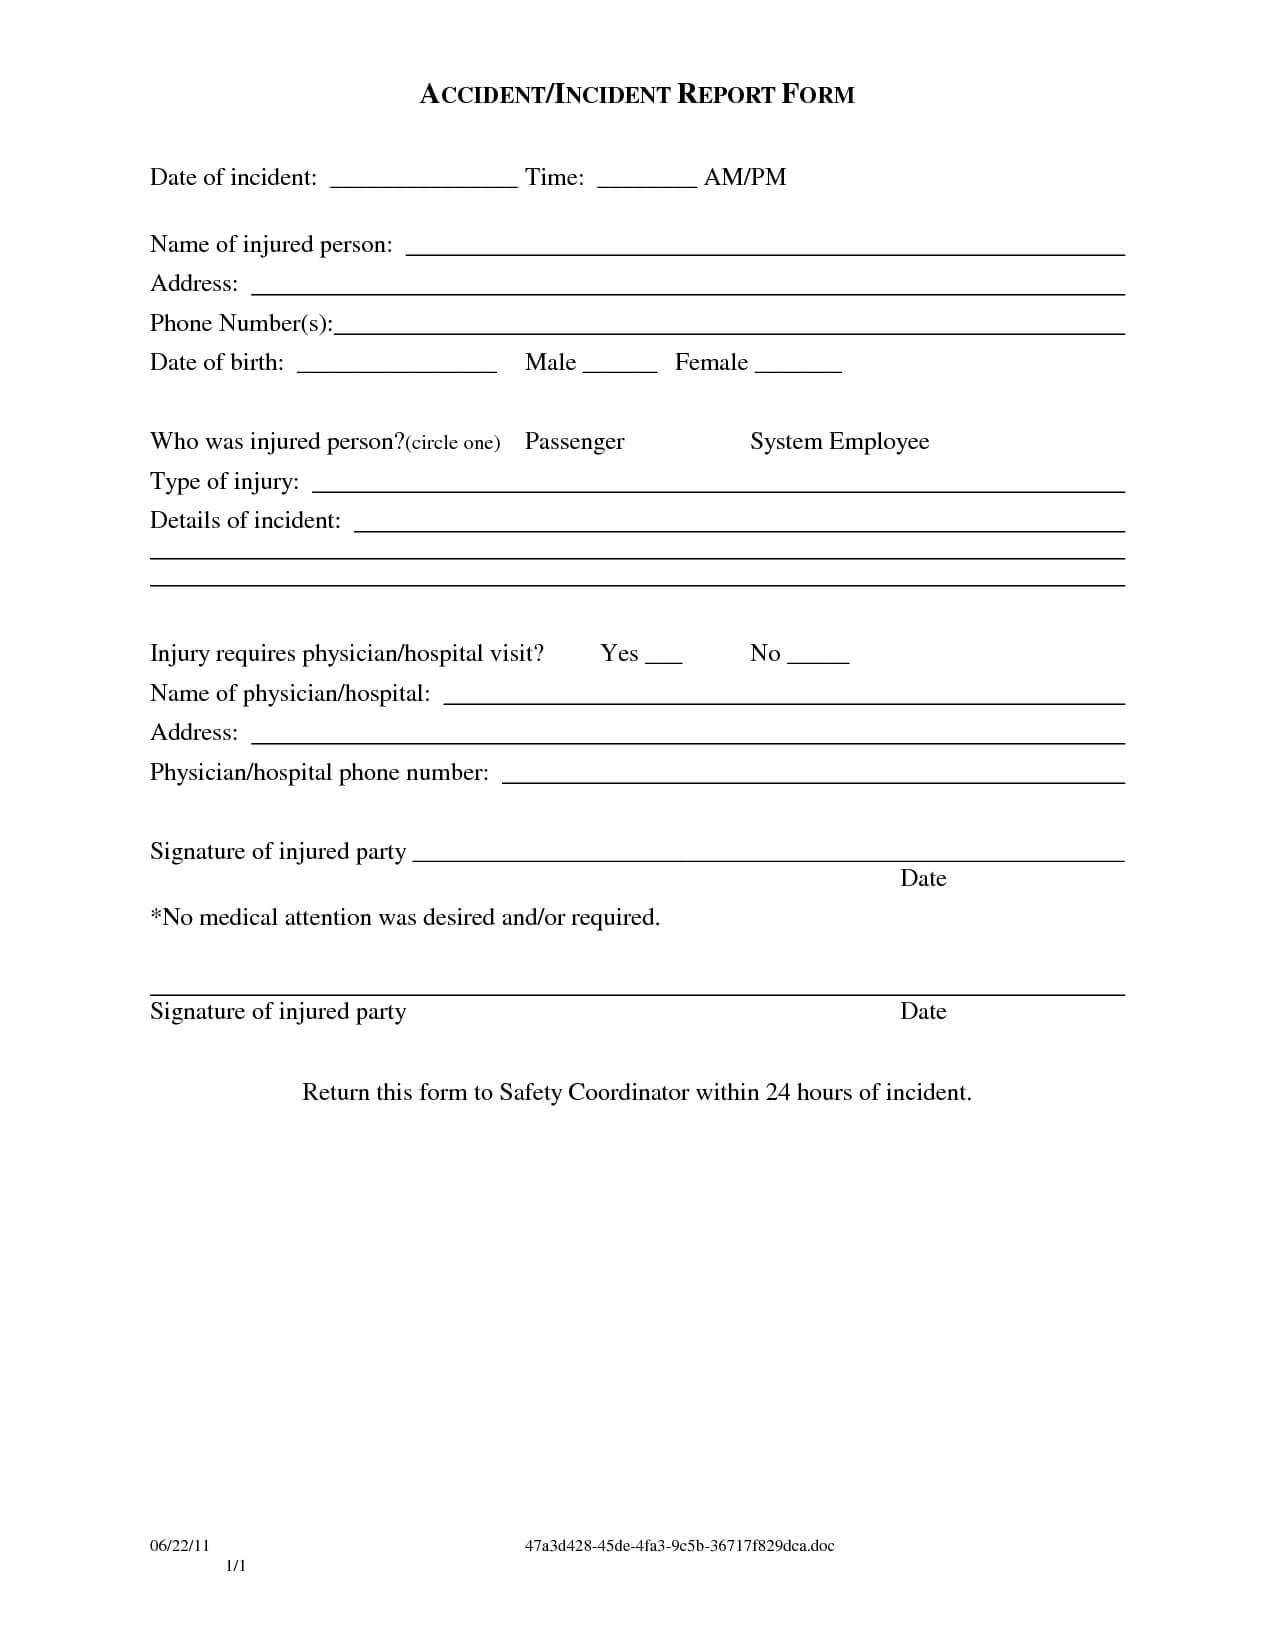 Medical Incident Report Form Template With Medical Report Template Free Downloads